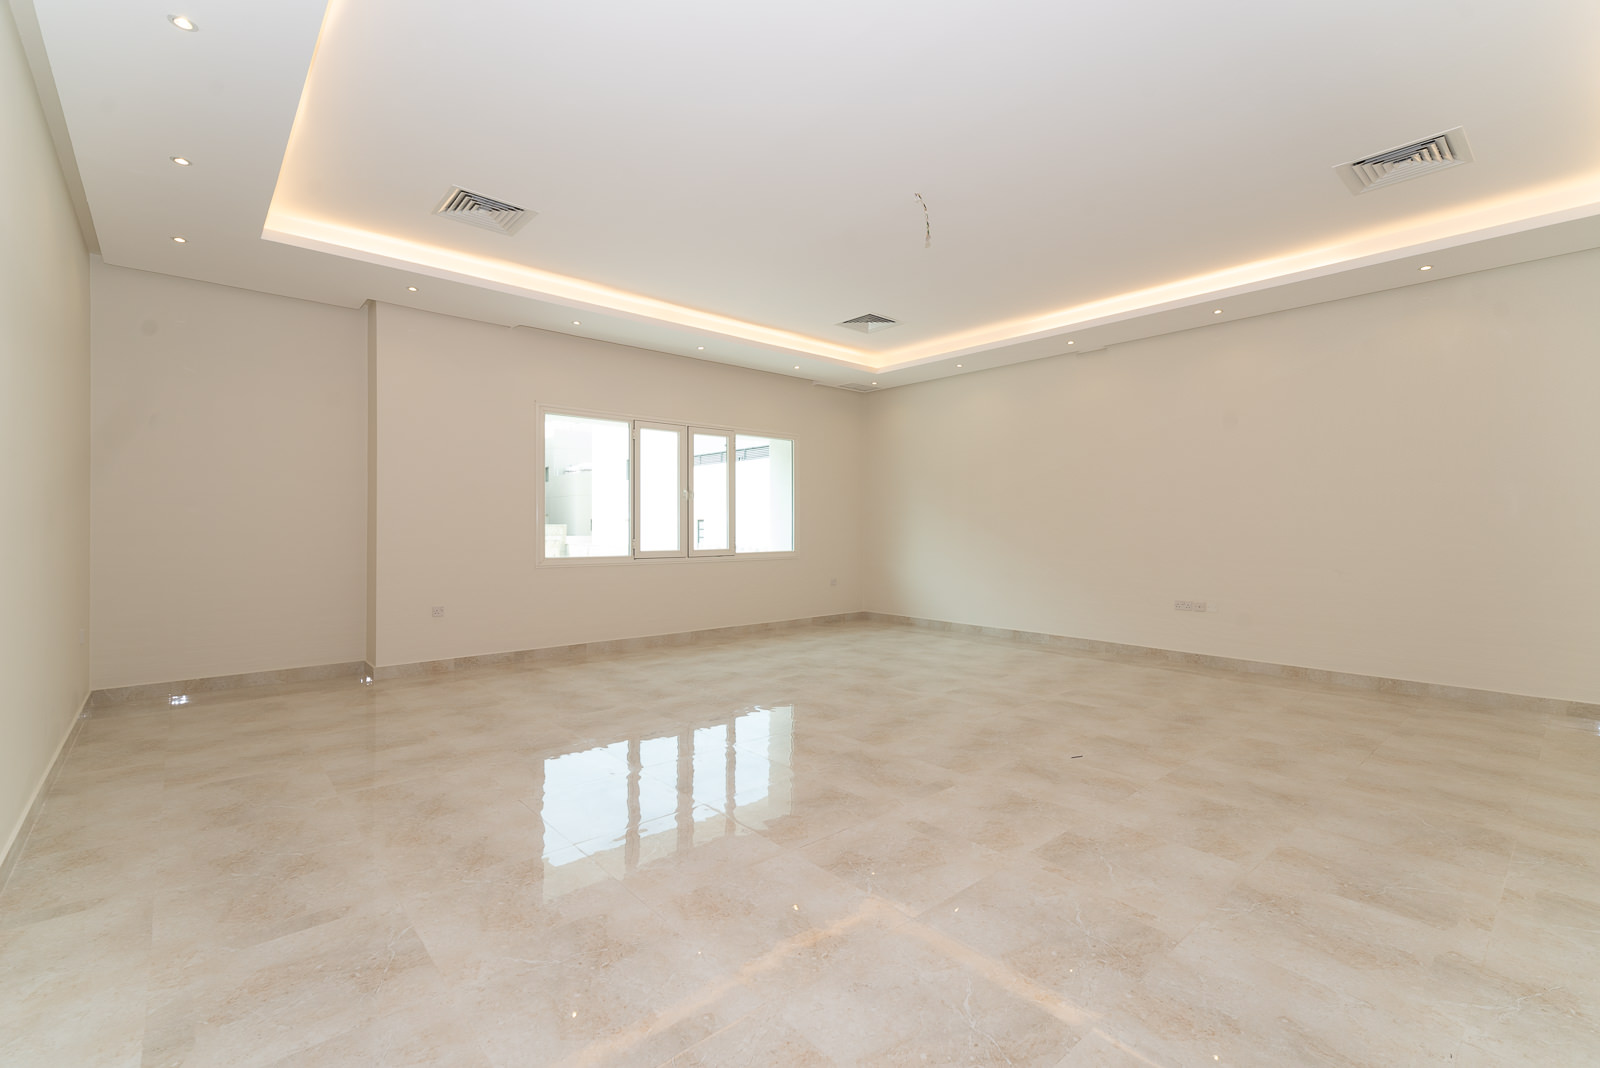 Masayel – new, spacious, unfurnished four bedroom floor